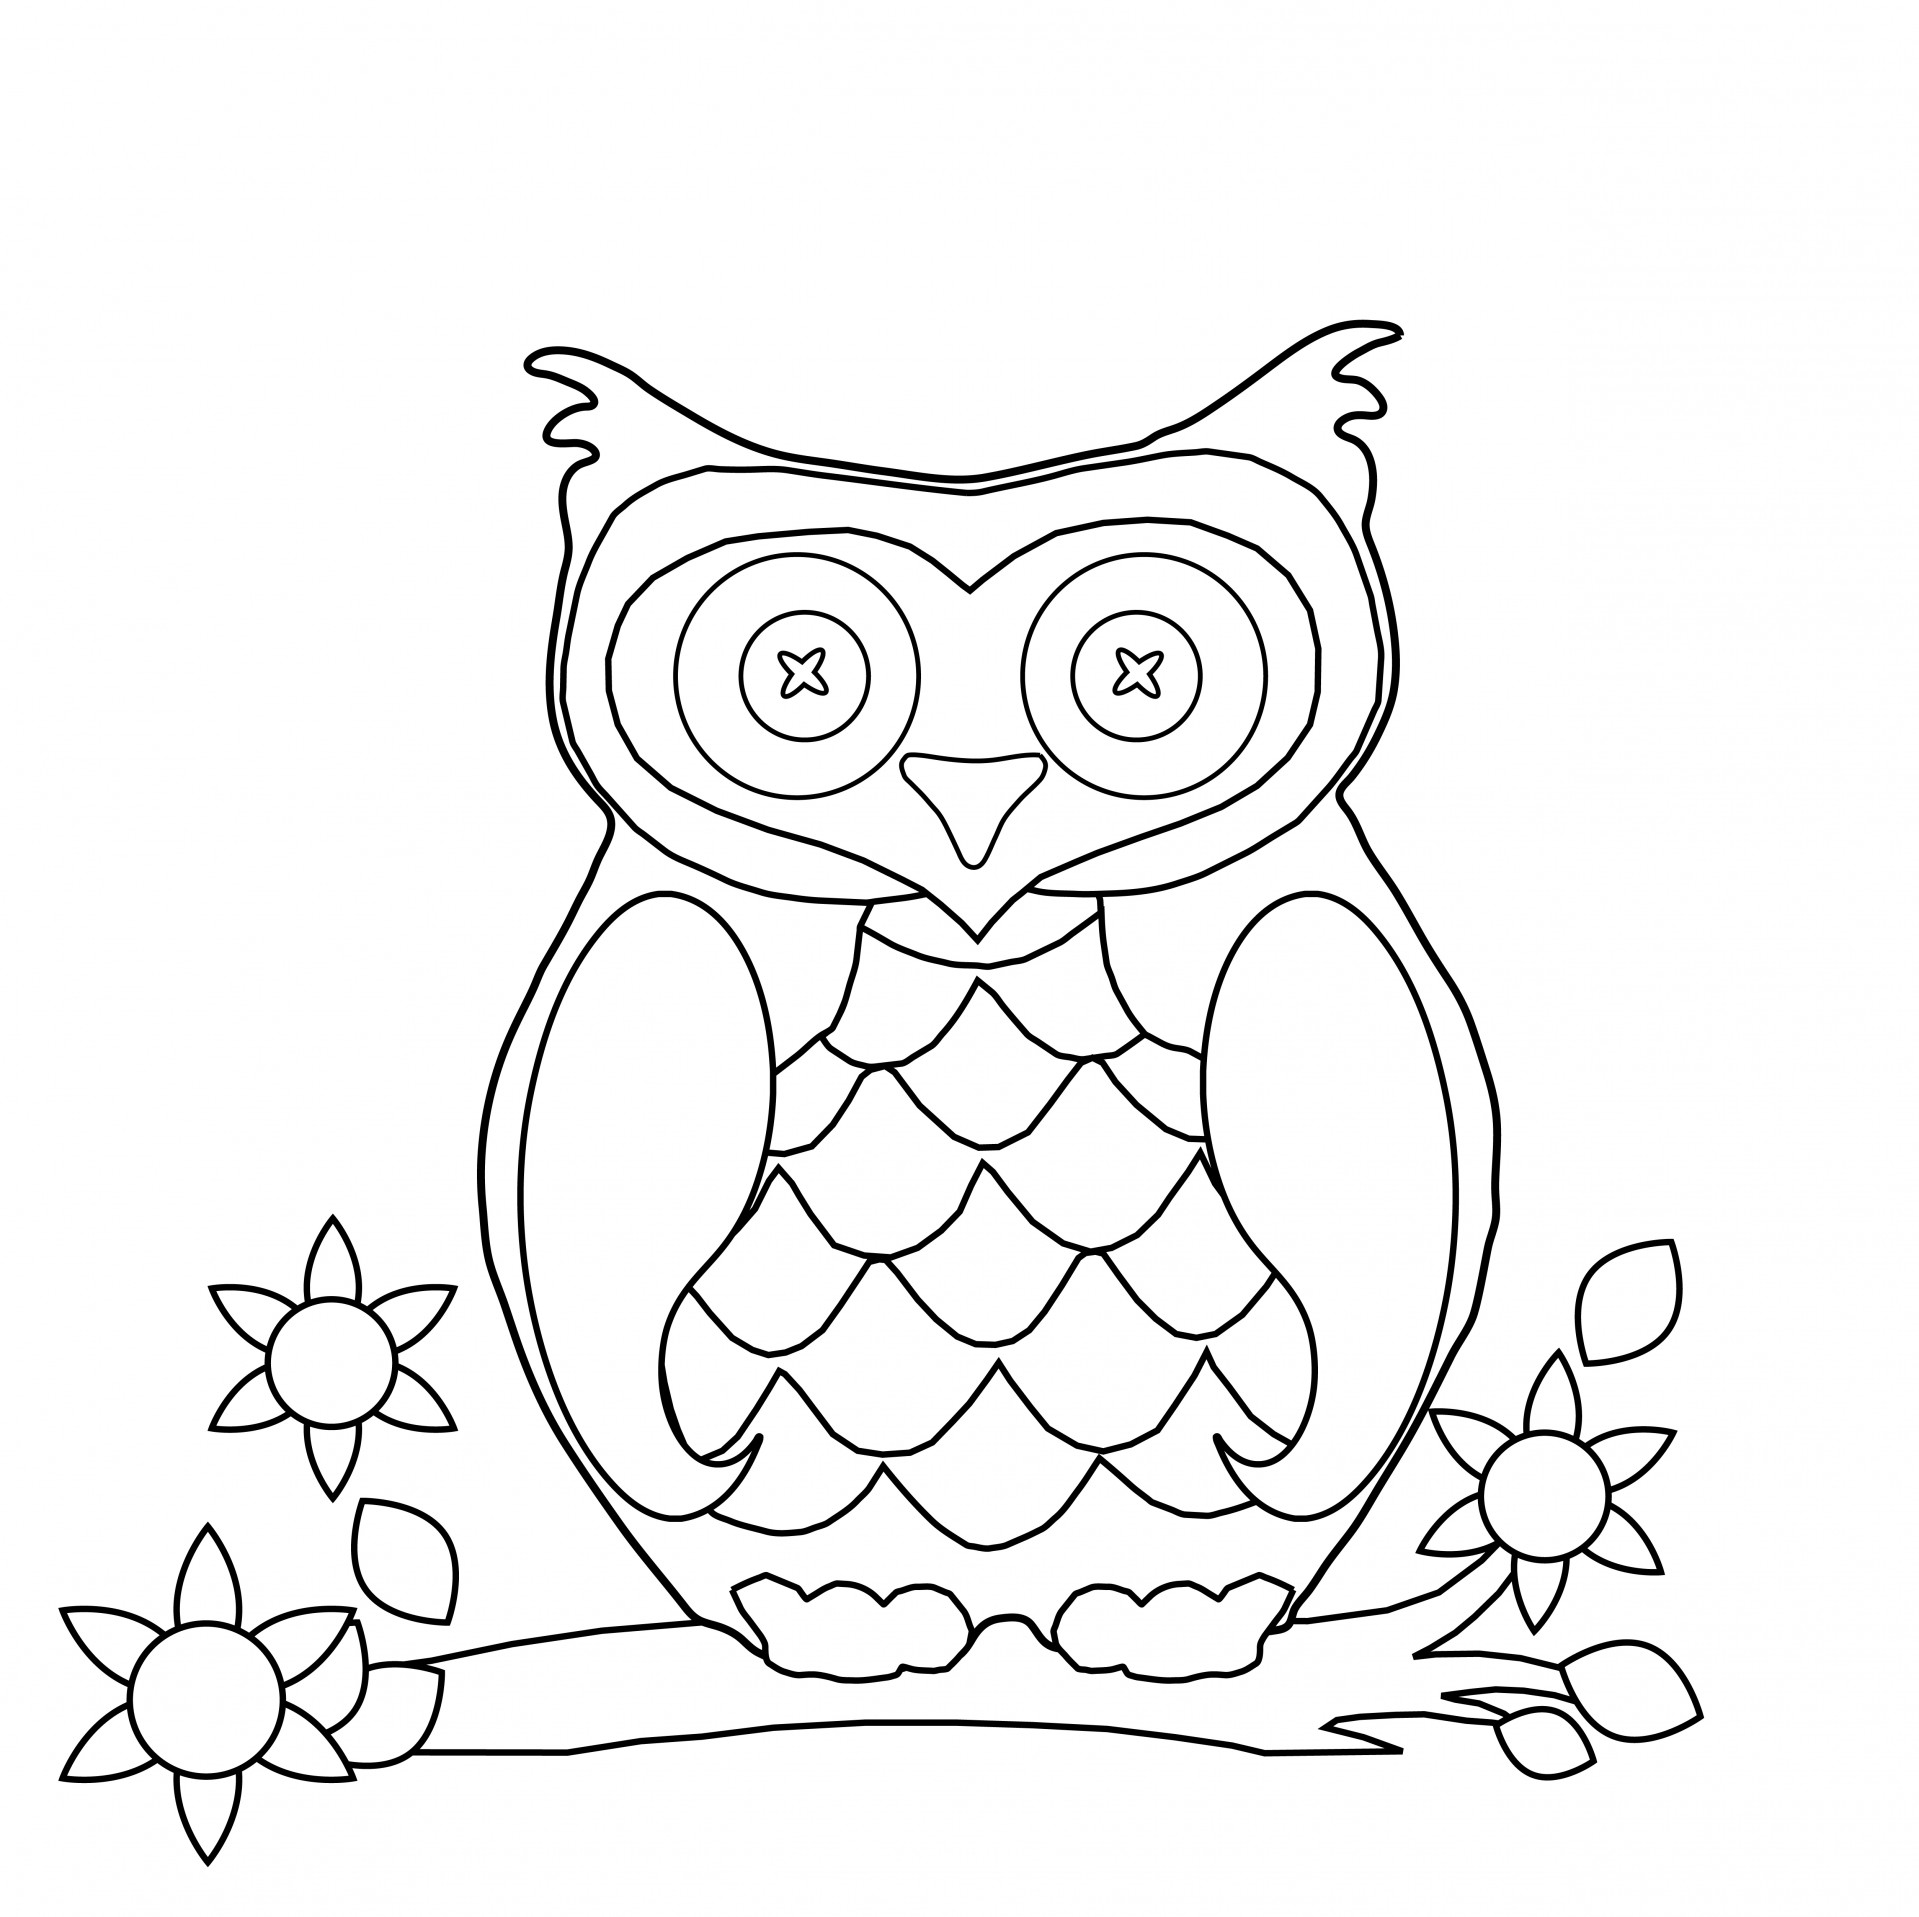 owl coloring page cartoon owl coloring page free printable coloring pages coloring owl page